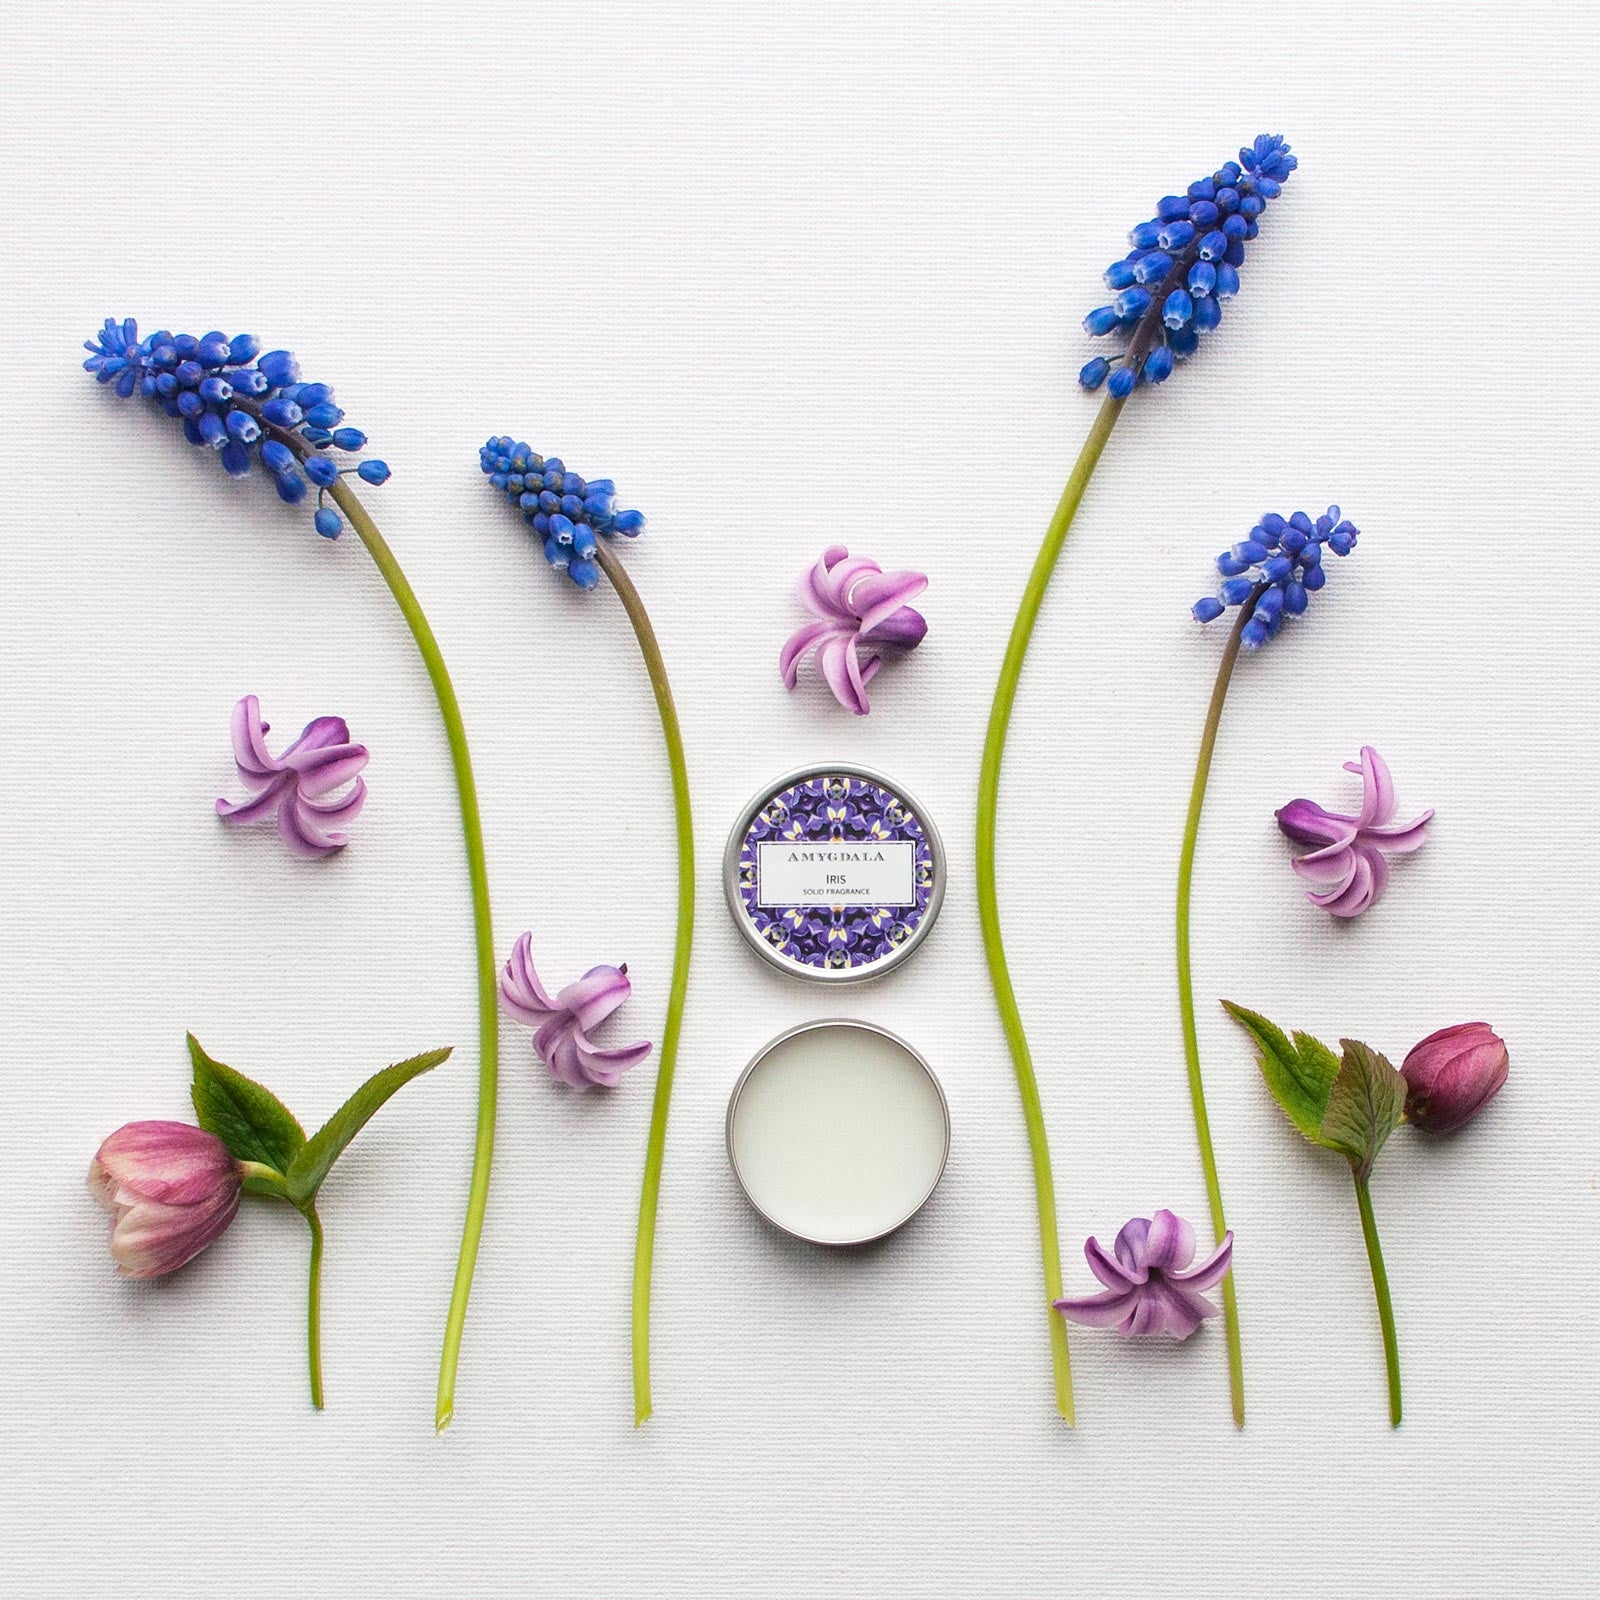 Iris solid perfume with fresh flowers